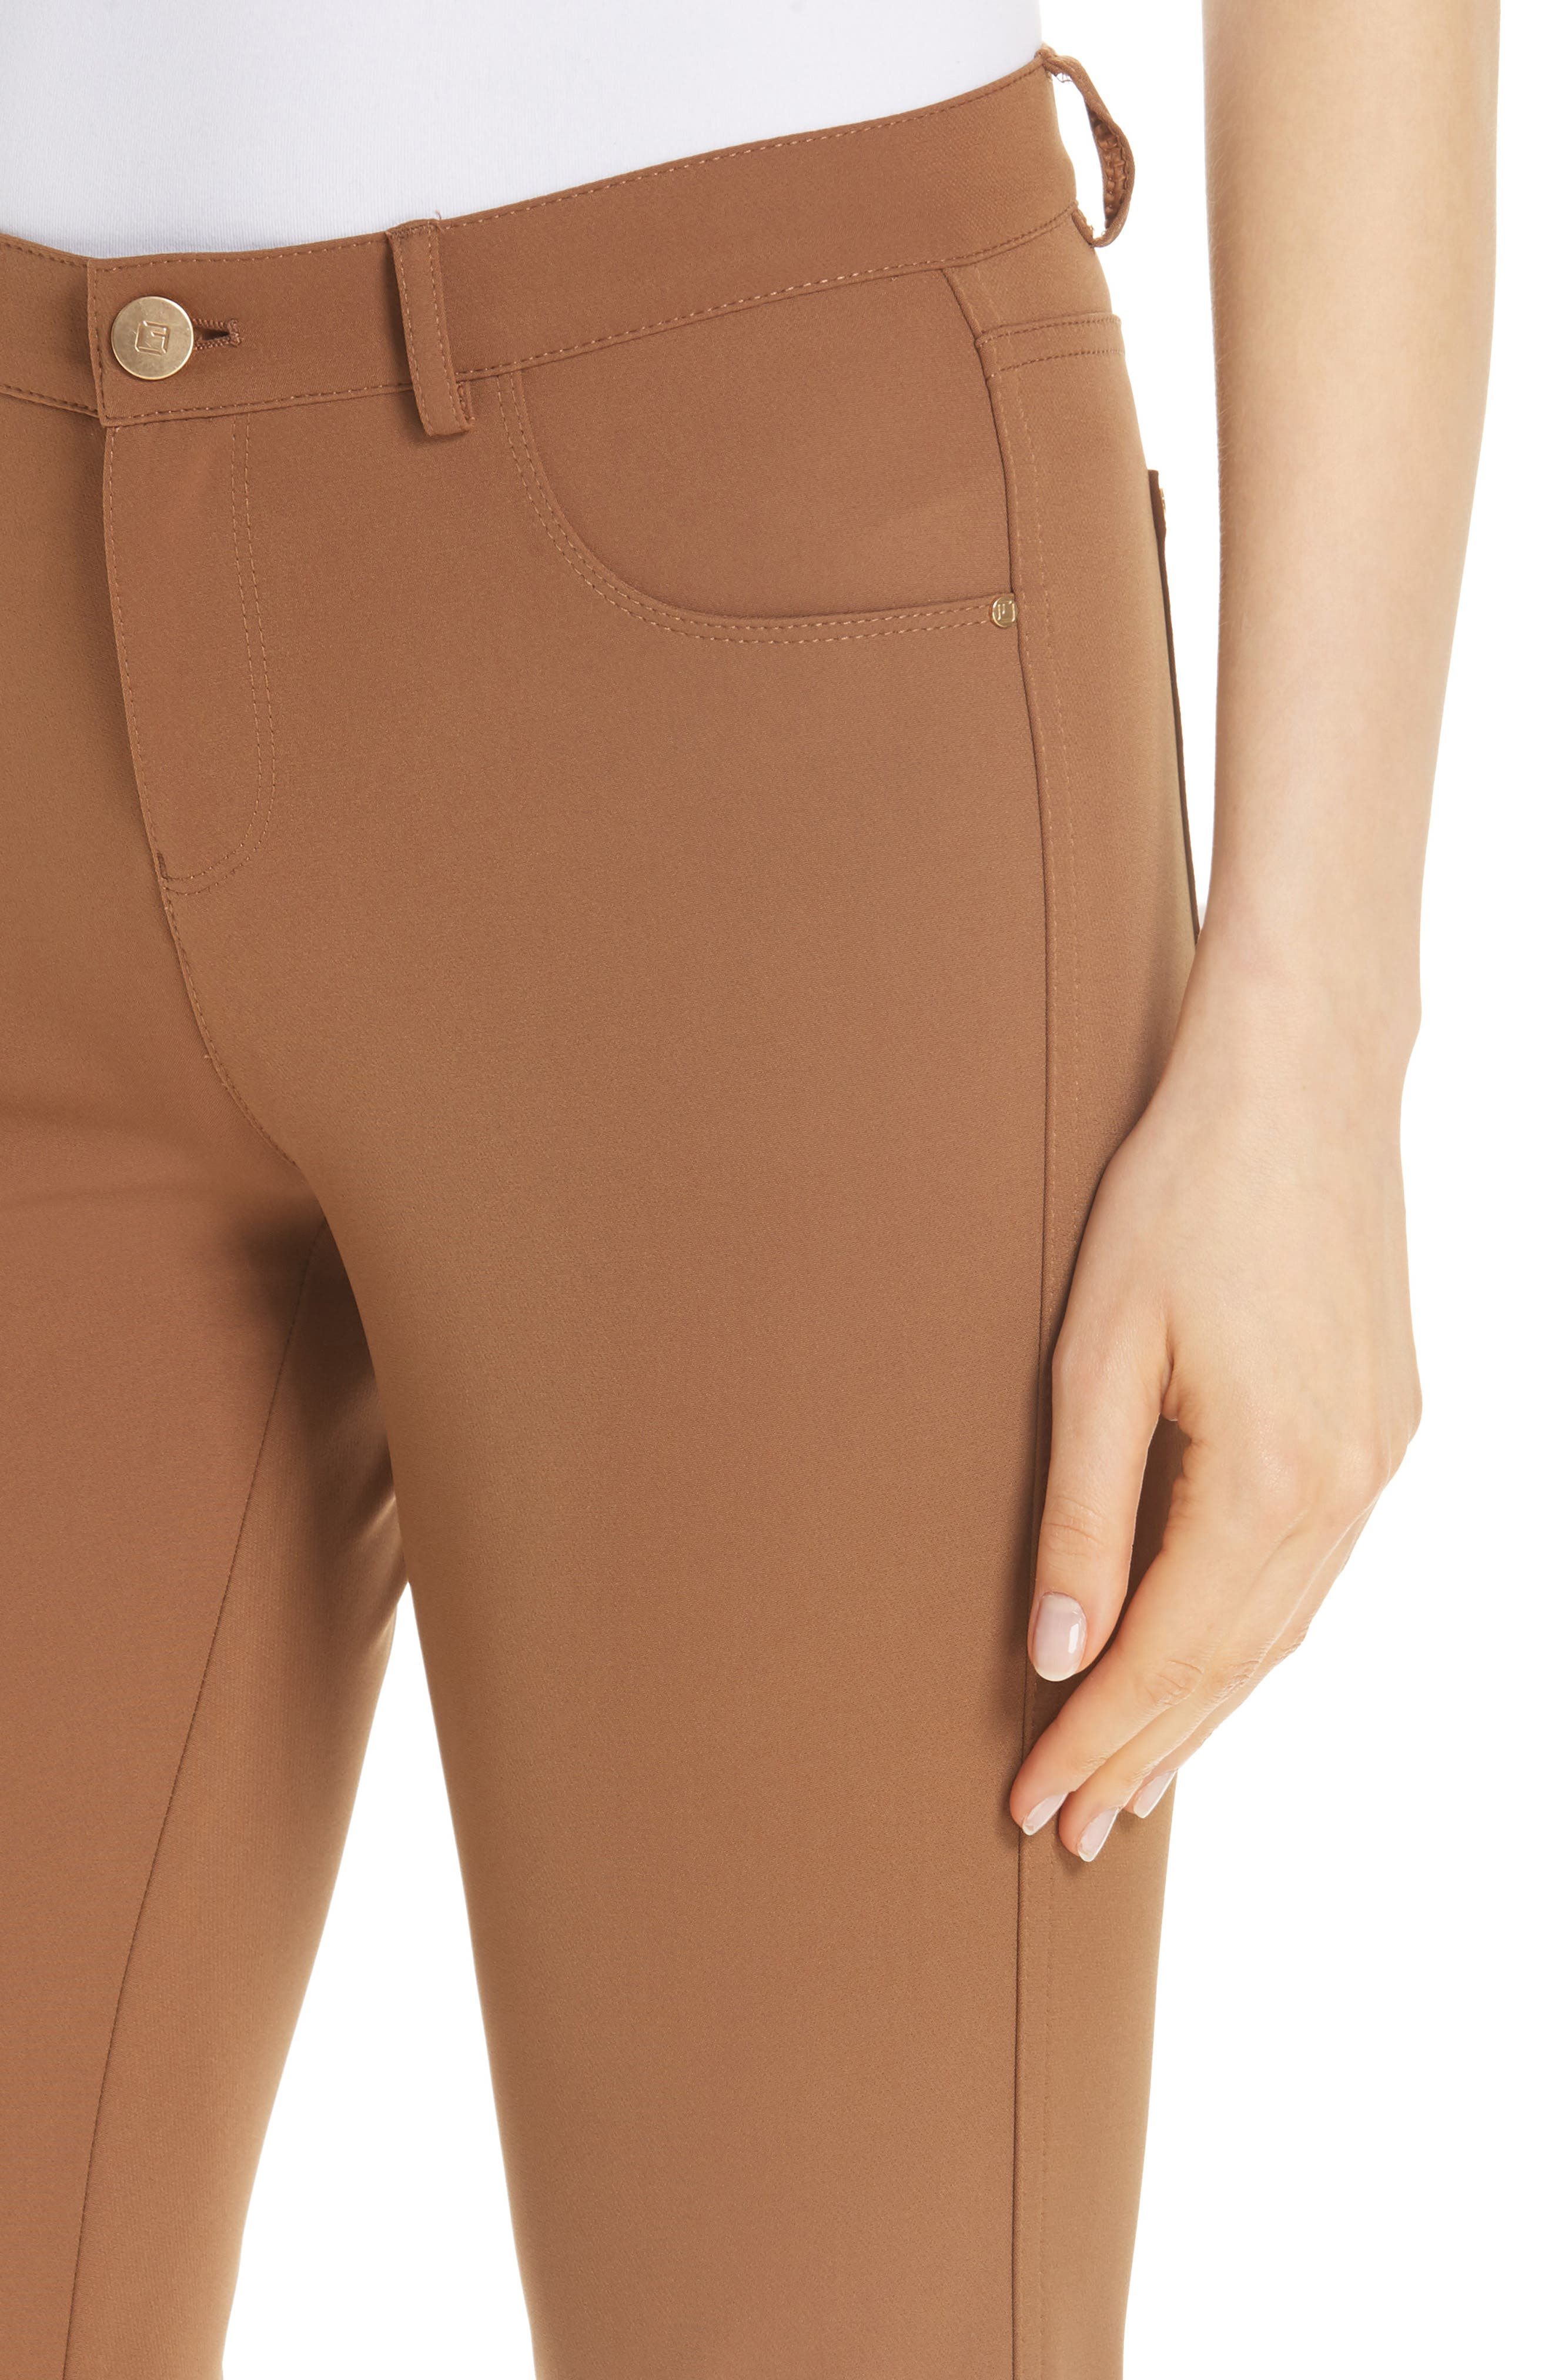 Mercer Acclaimed Stretch Skinny Pants,                             Alternate thumbnail 4, color,                             MAPLE